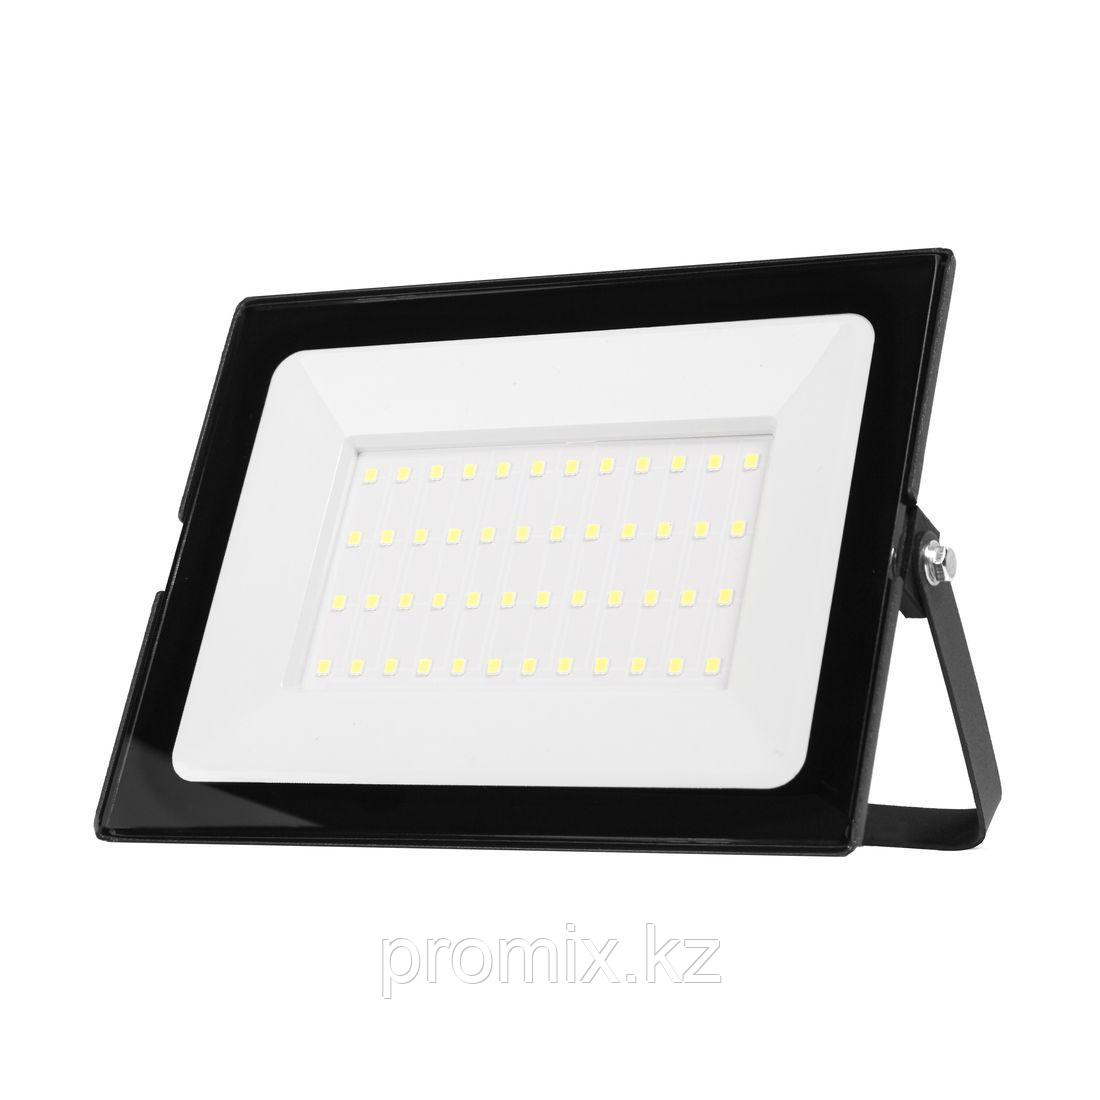 Прожектор LED SMD Ultraflash LFL-5001 C02